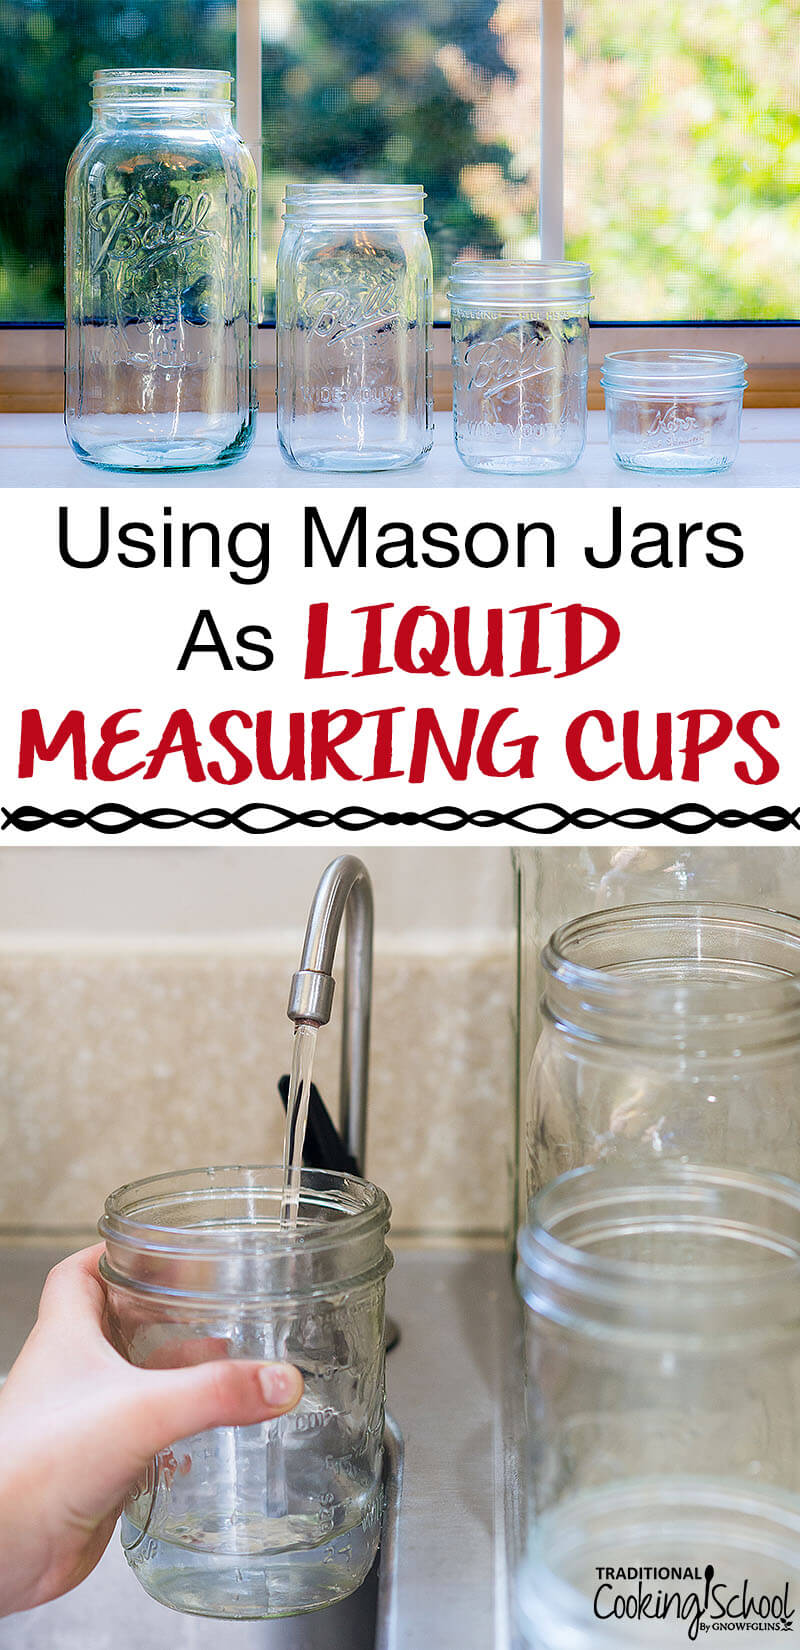 Mason jars on counter and mason jar being filled with water in sink with text overlay 'Using Mason Jars as Liquid Measuring Cups'.